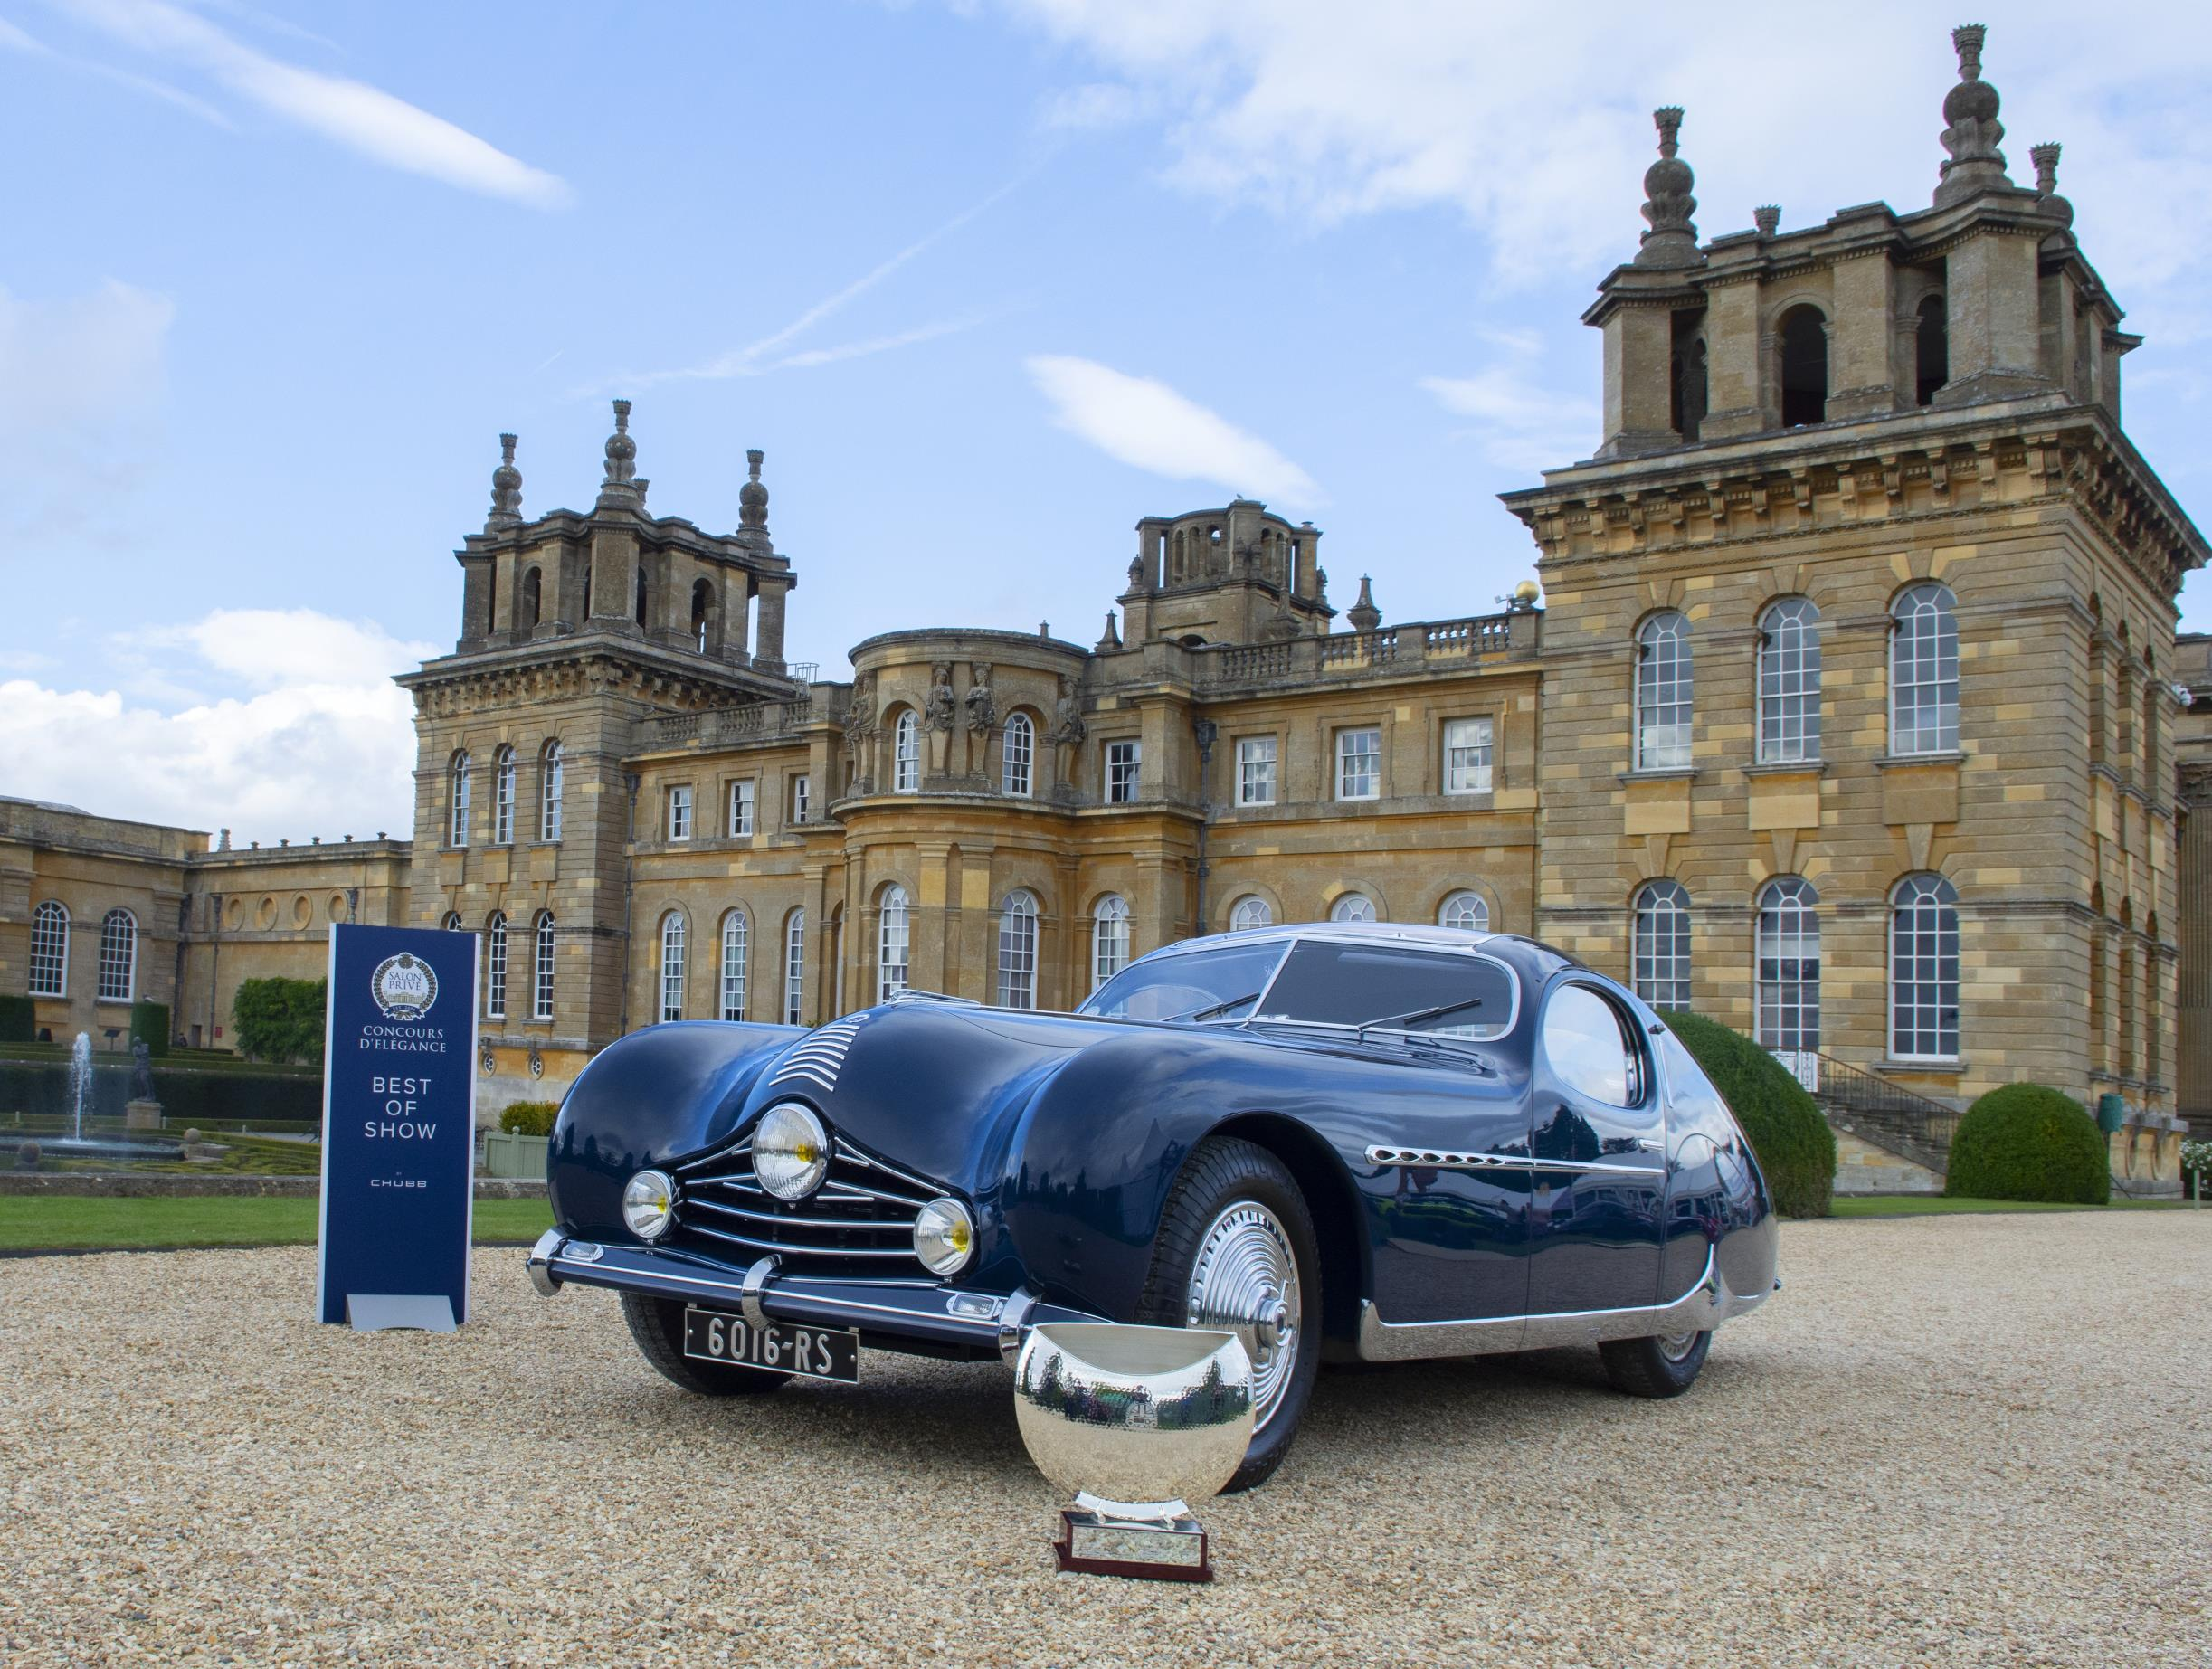 salon prive classic car in front of blenheim palace